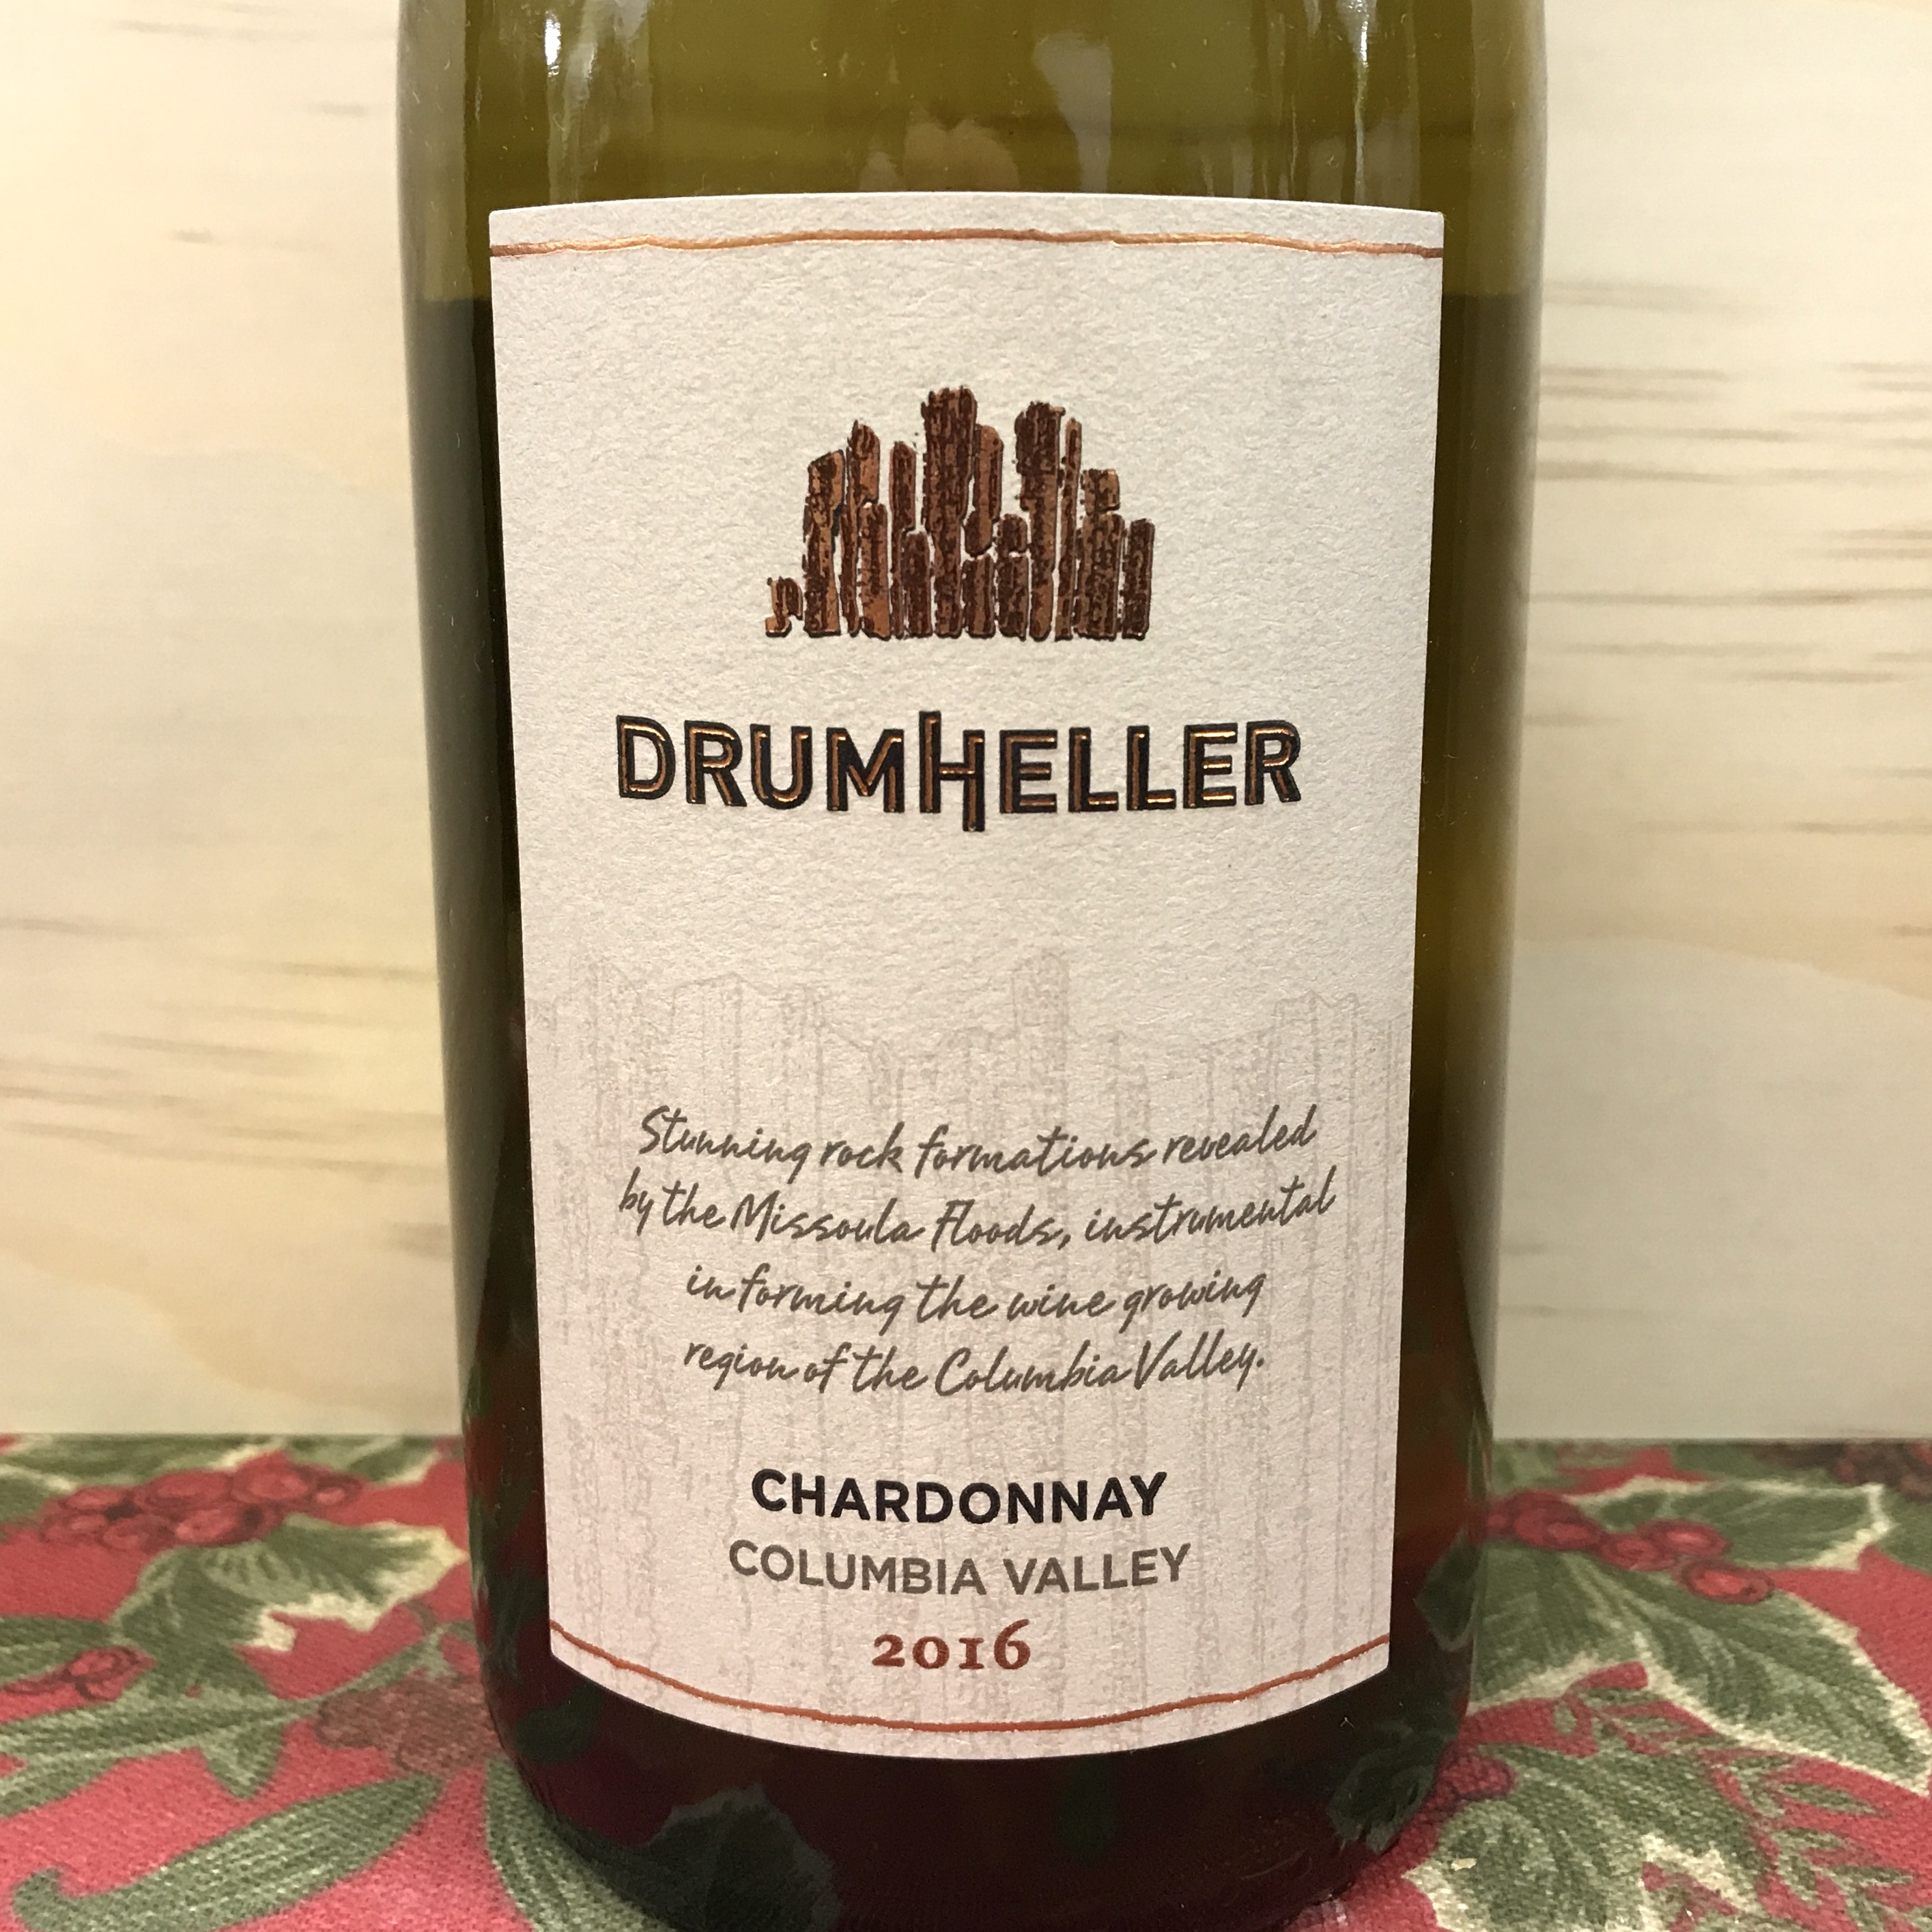 Drumheller Chardonnay Columbia Valley 2016